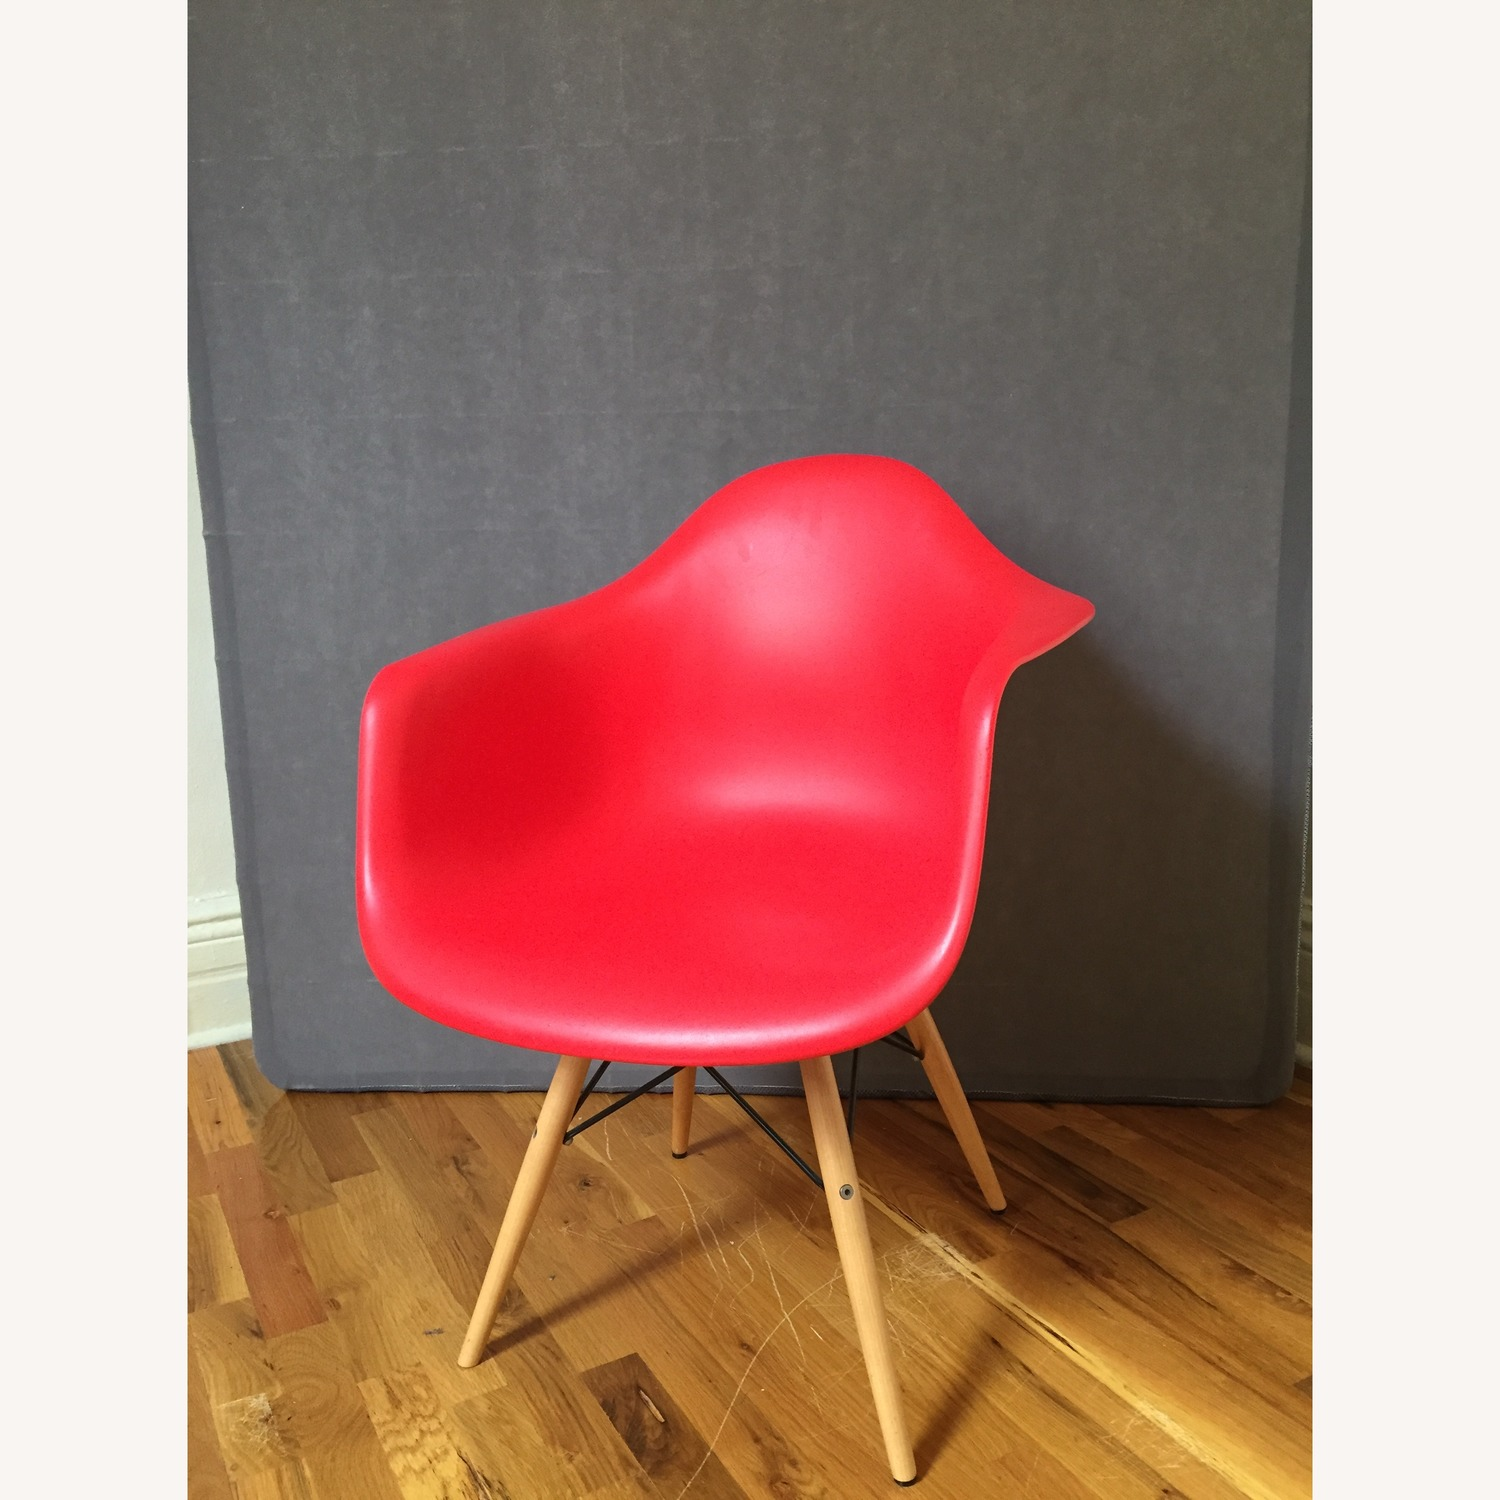 Replica Eames Molded Plastic Red Armchair